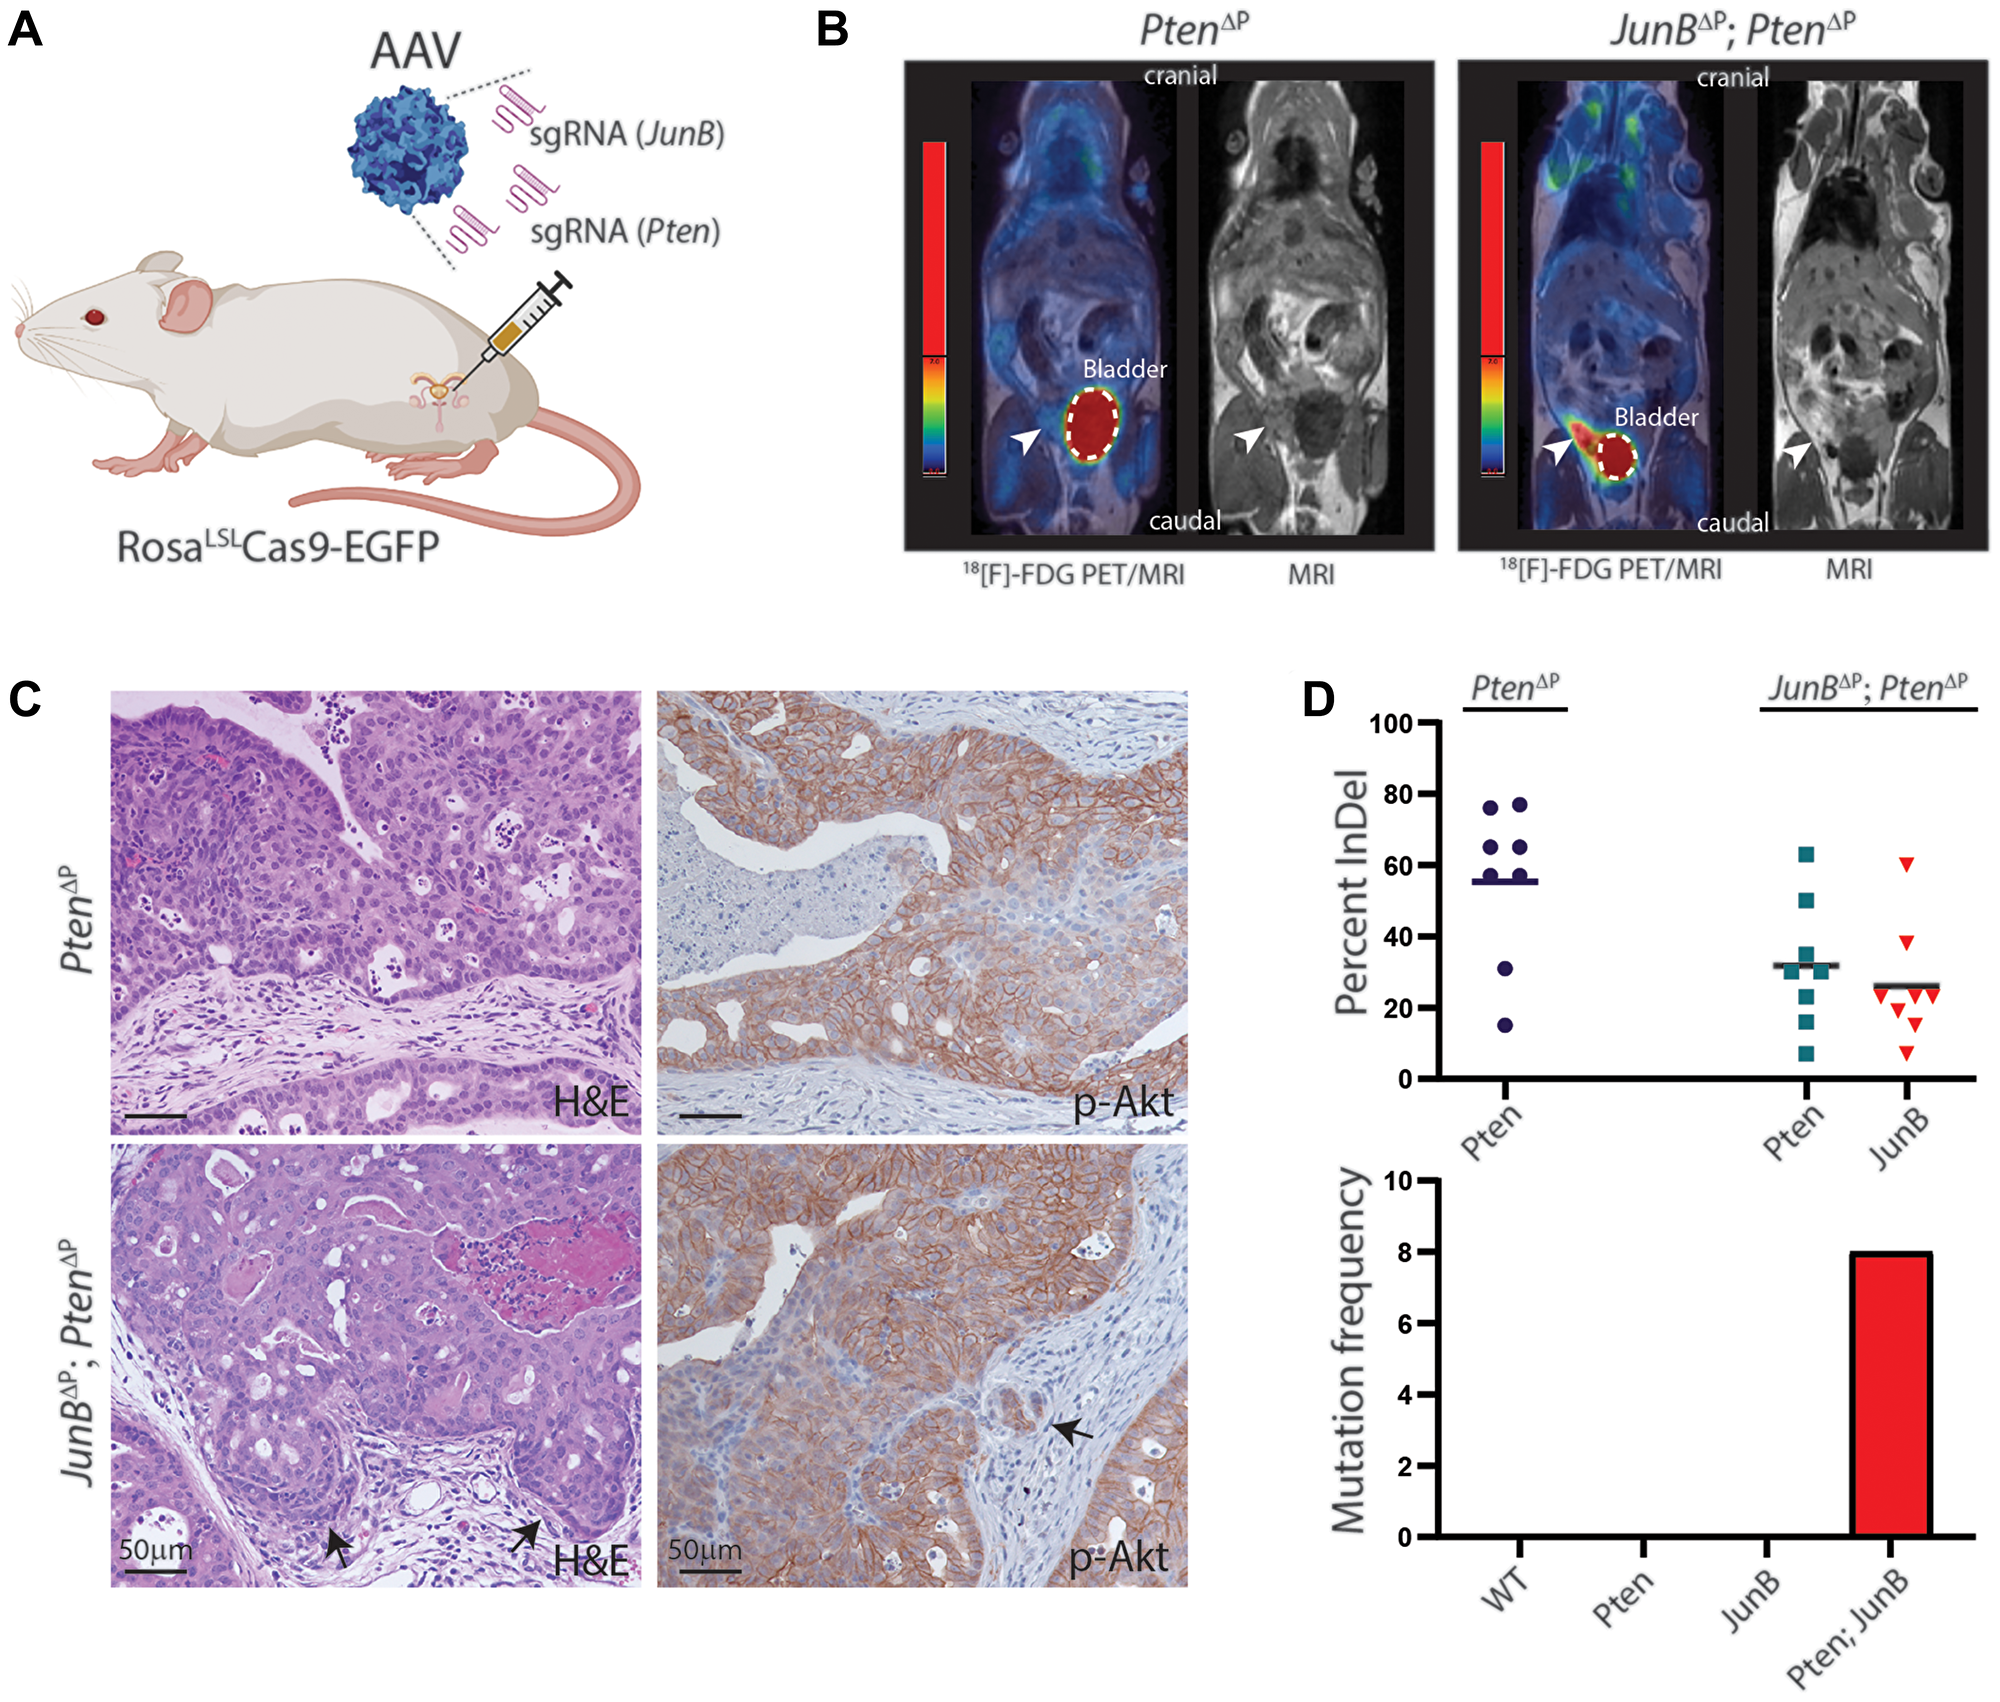 Loss of JunB and Pten in the murine prostate epithelium by CRISPR/Cas9.